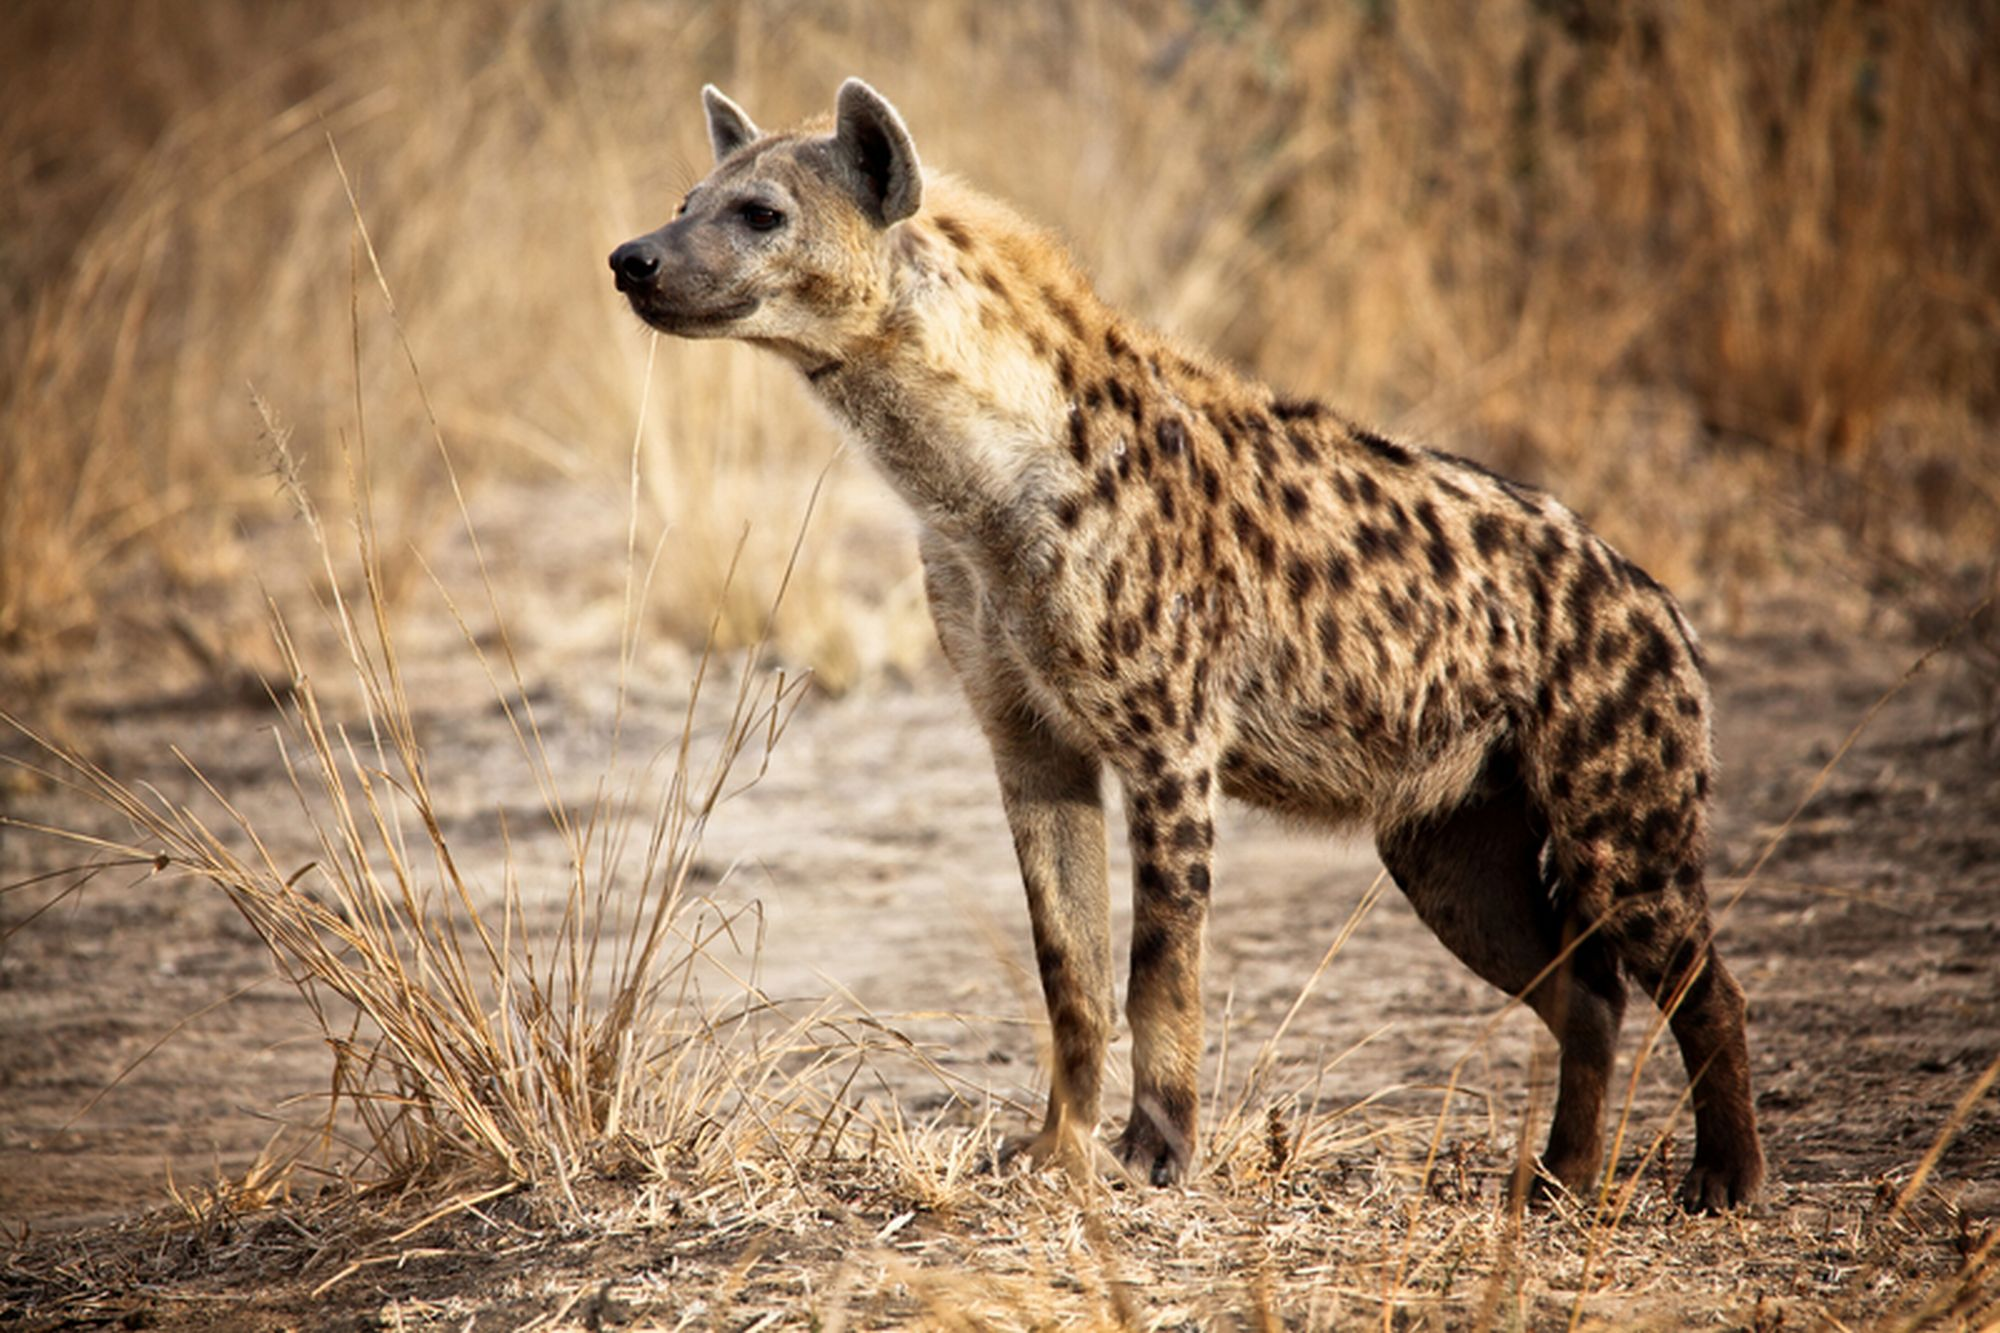 http://www.dreamstime.com/royalty-free-stock-image-spotted-hyena-image25832716